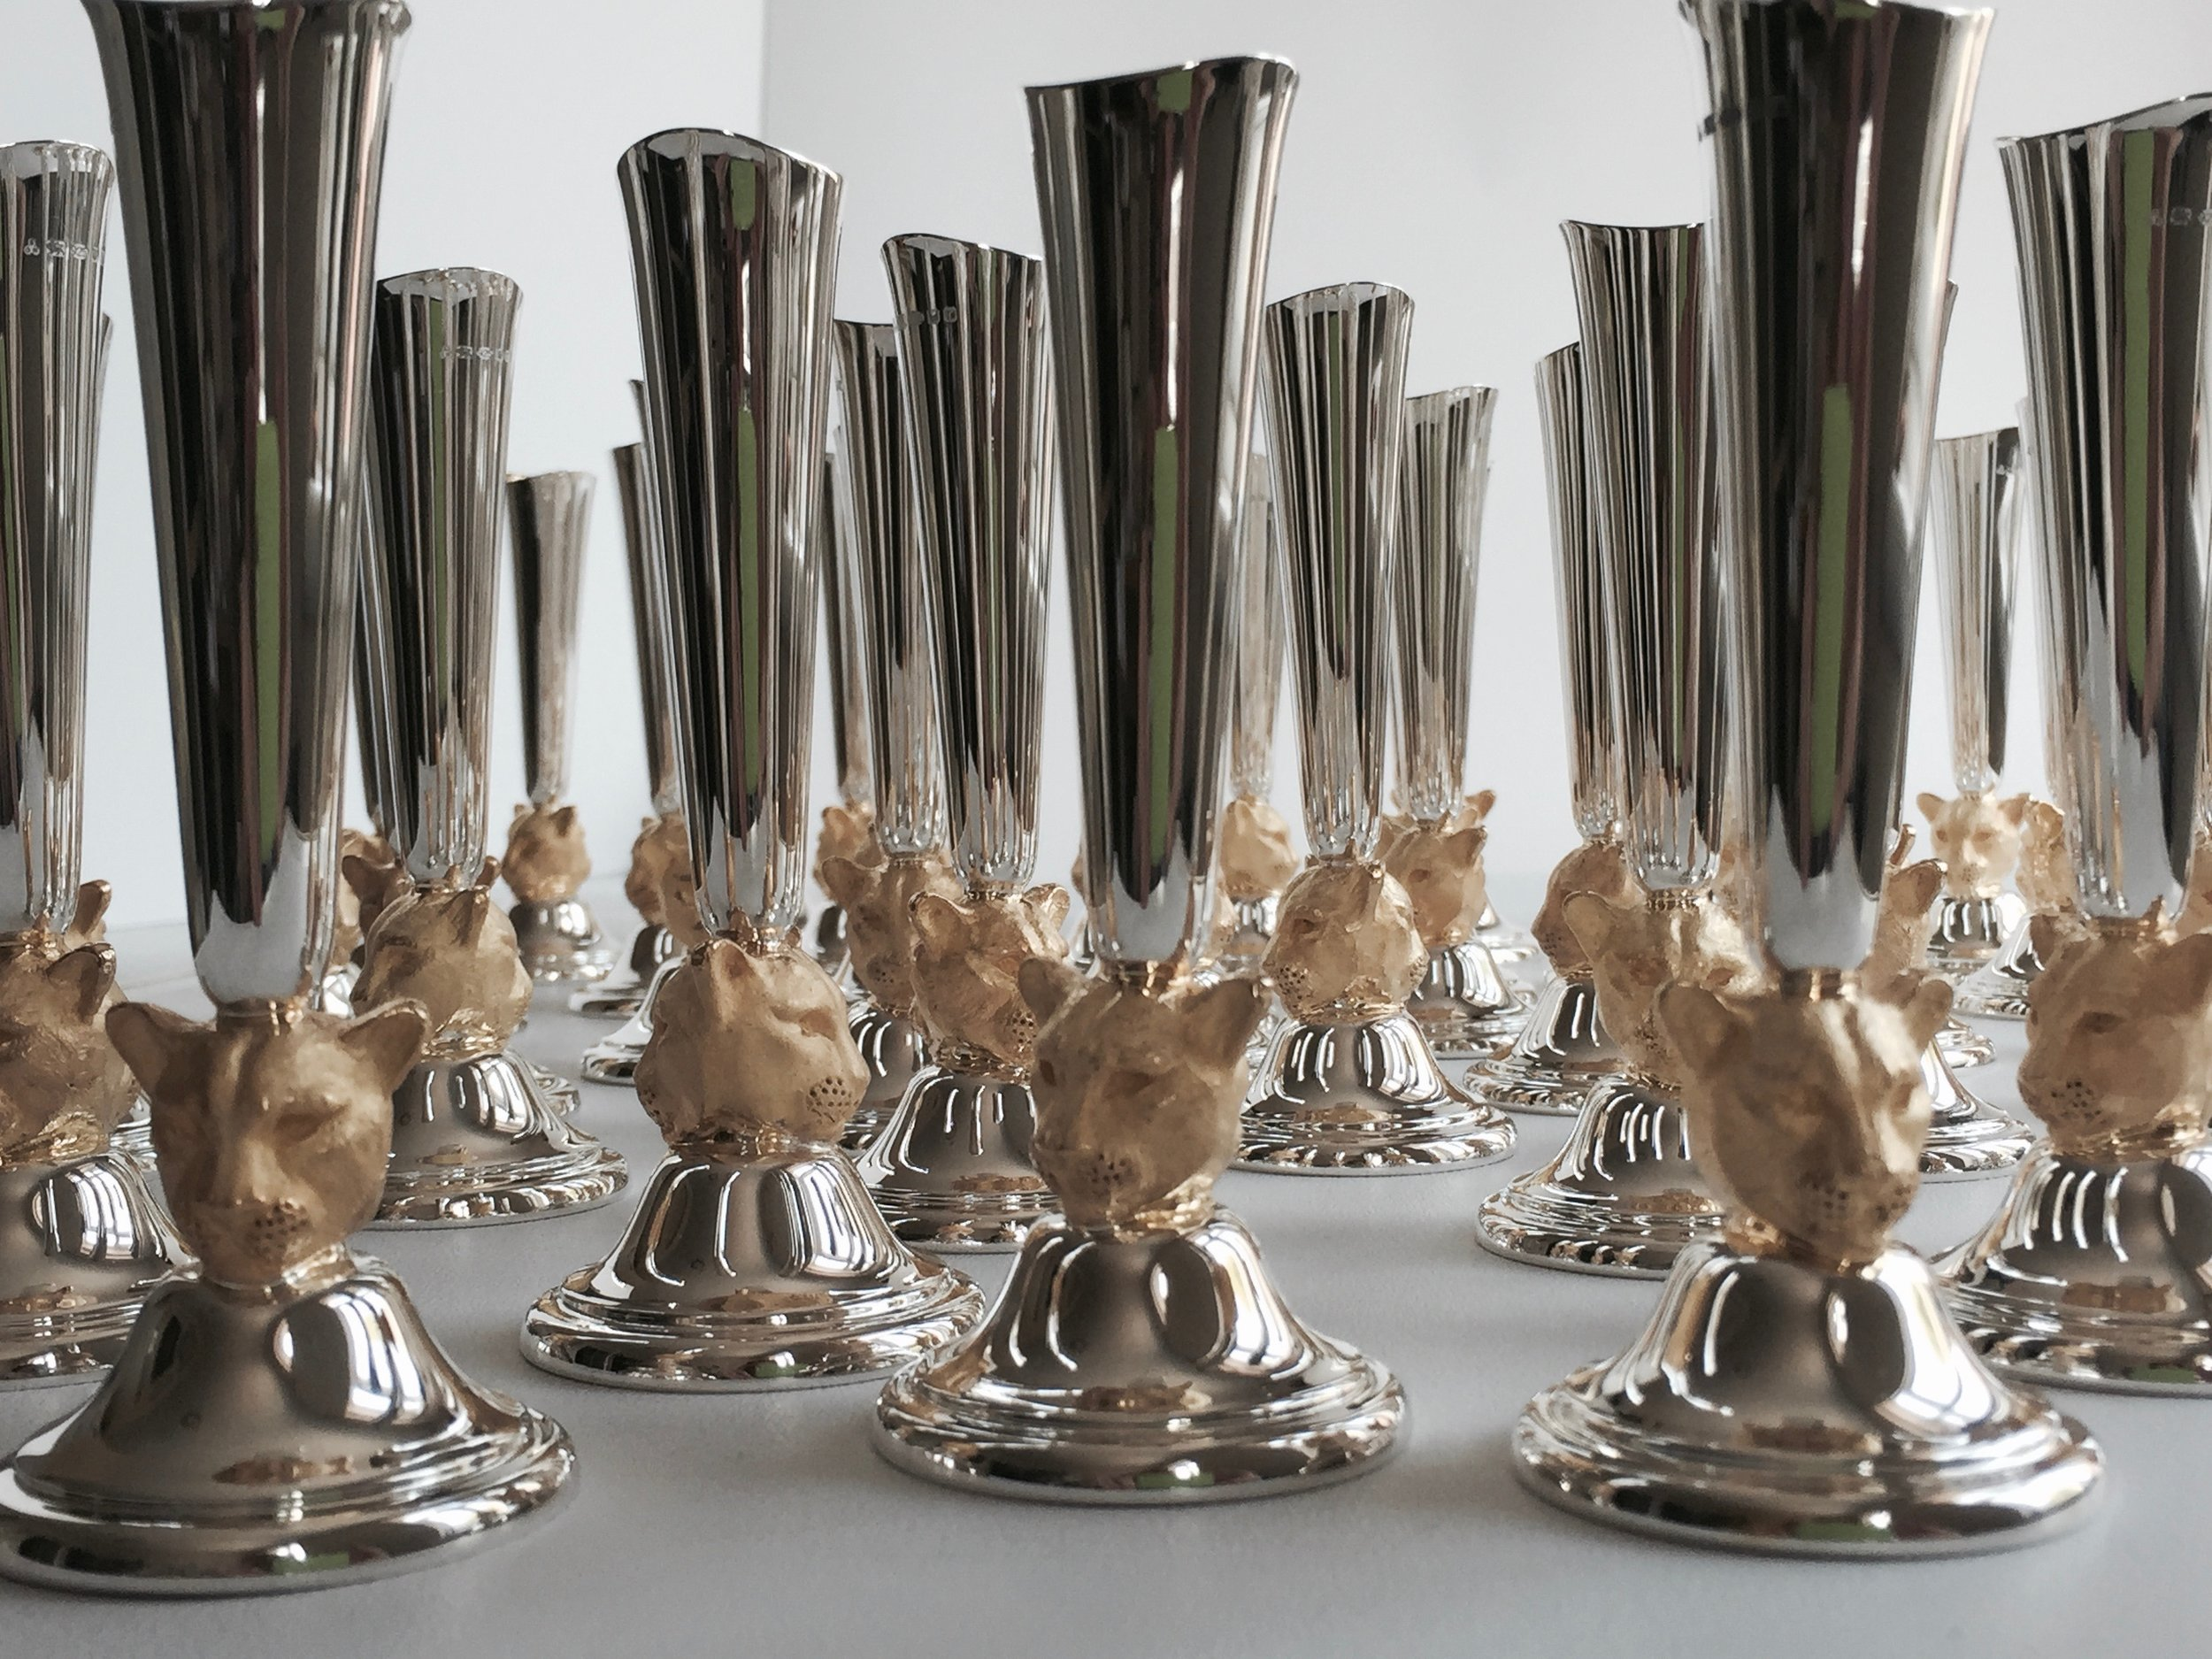 Close up image of multiple bud vases with leopard head